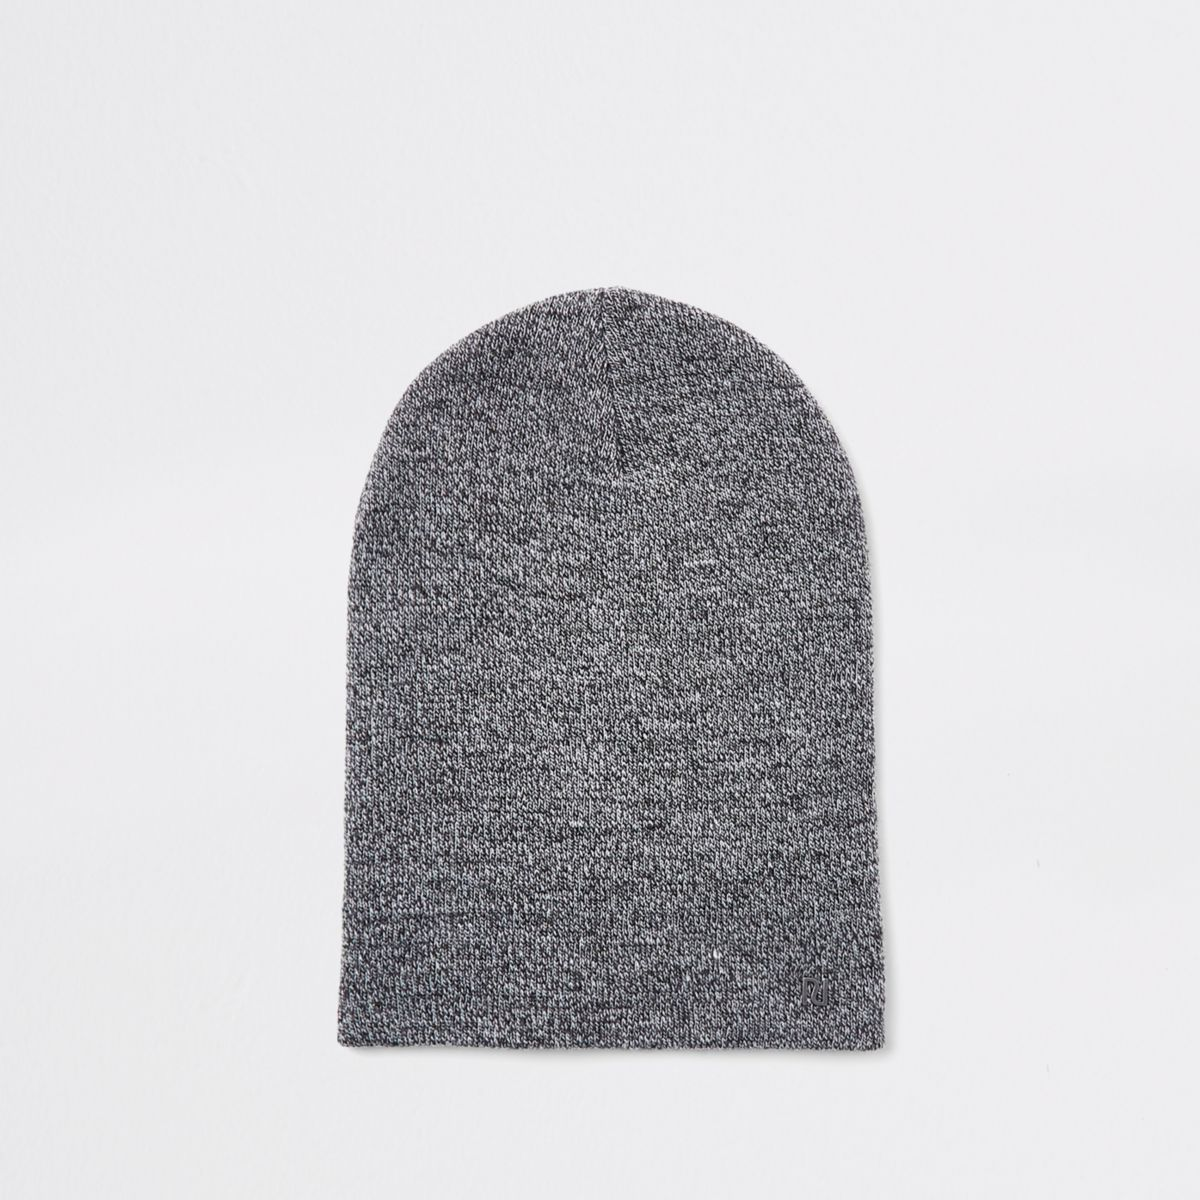 Light grey twist slouch beanie hat